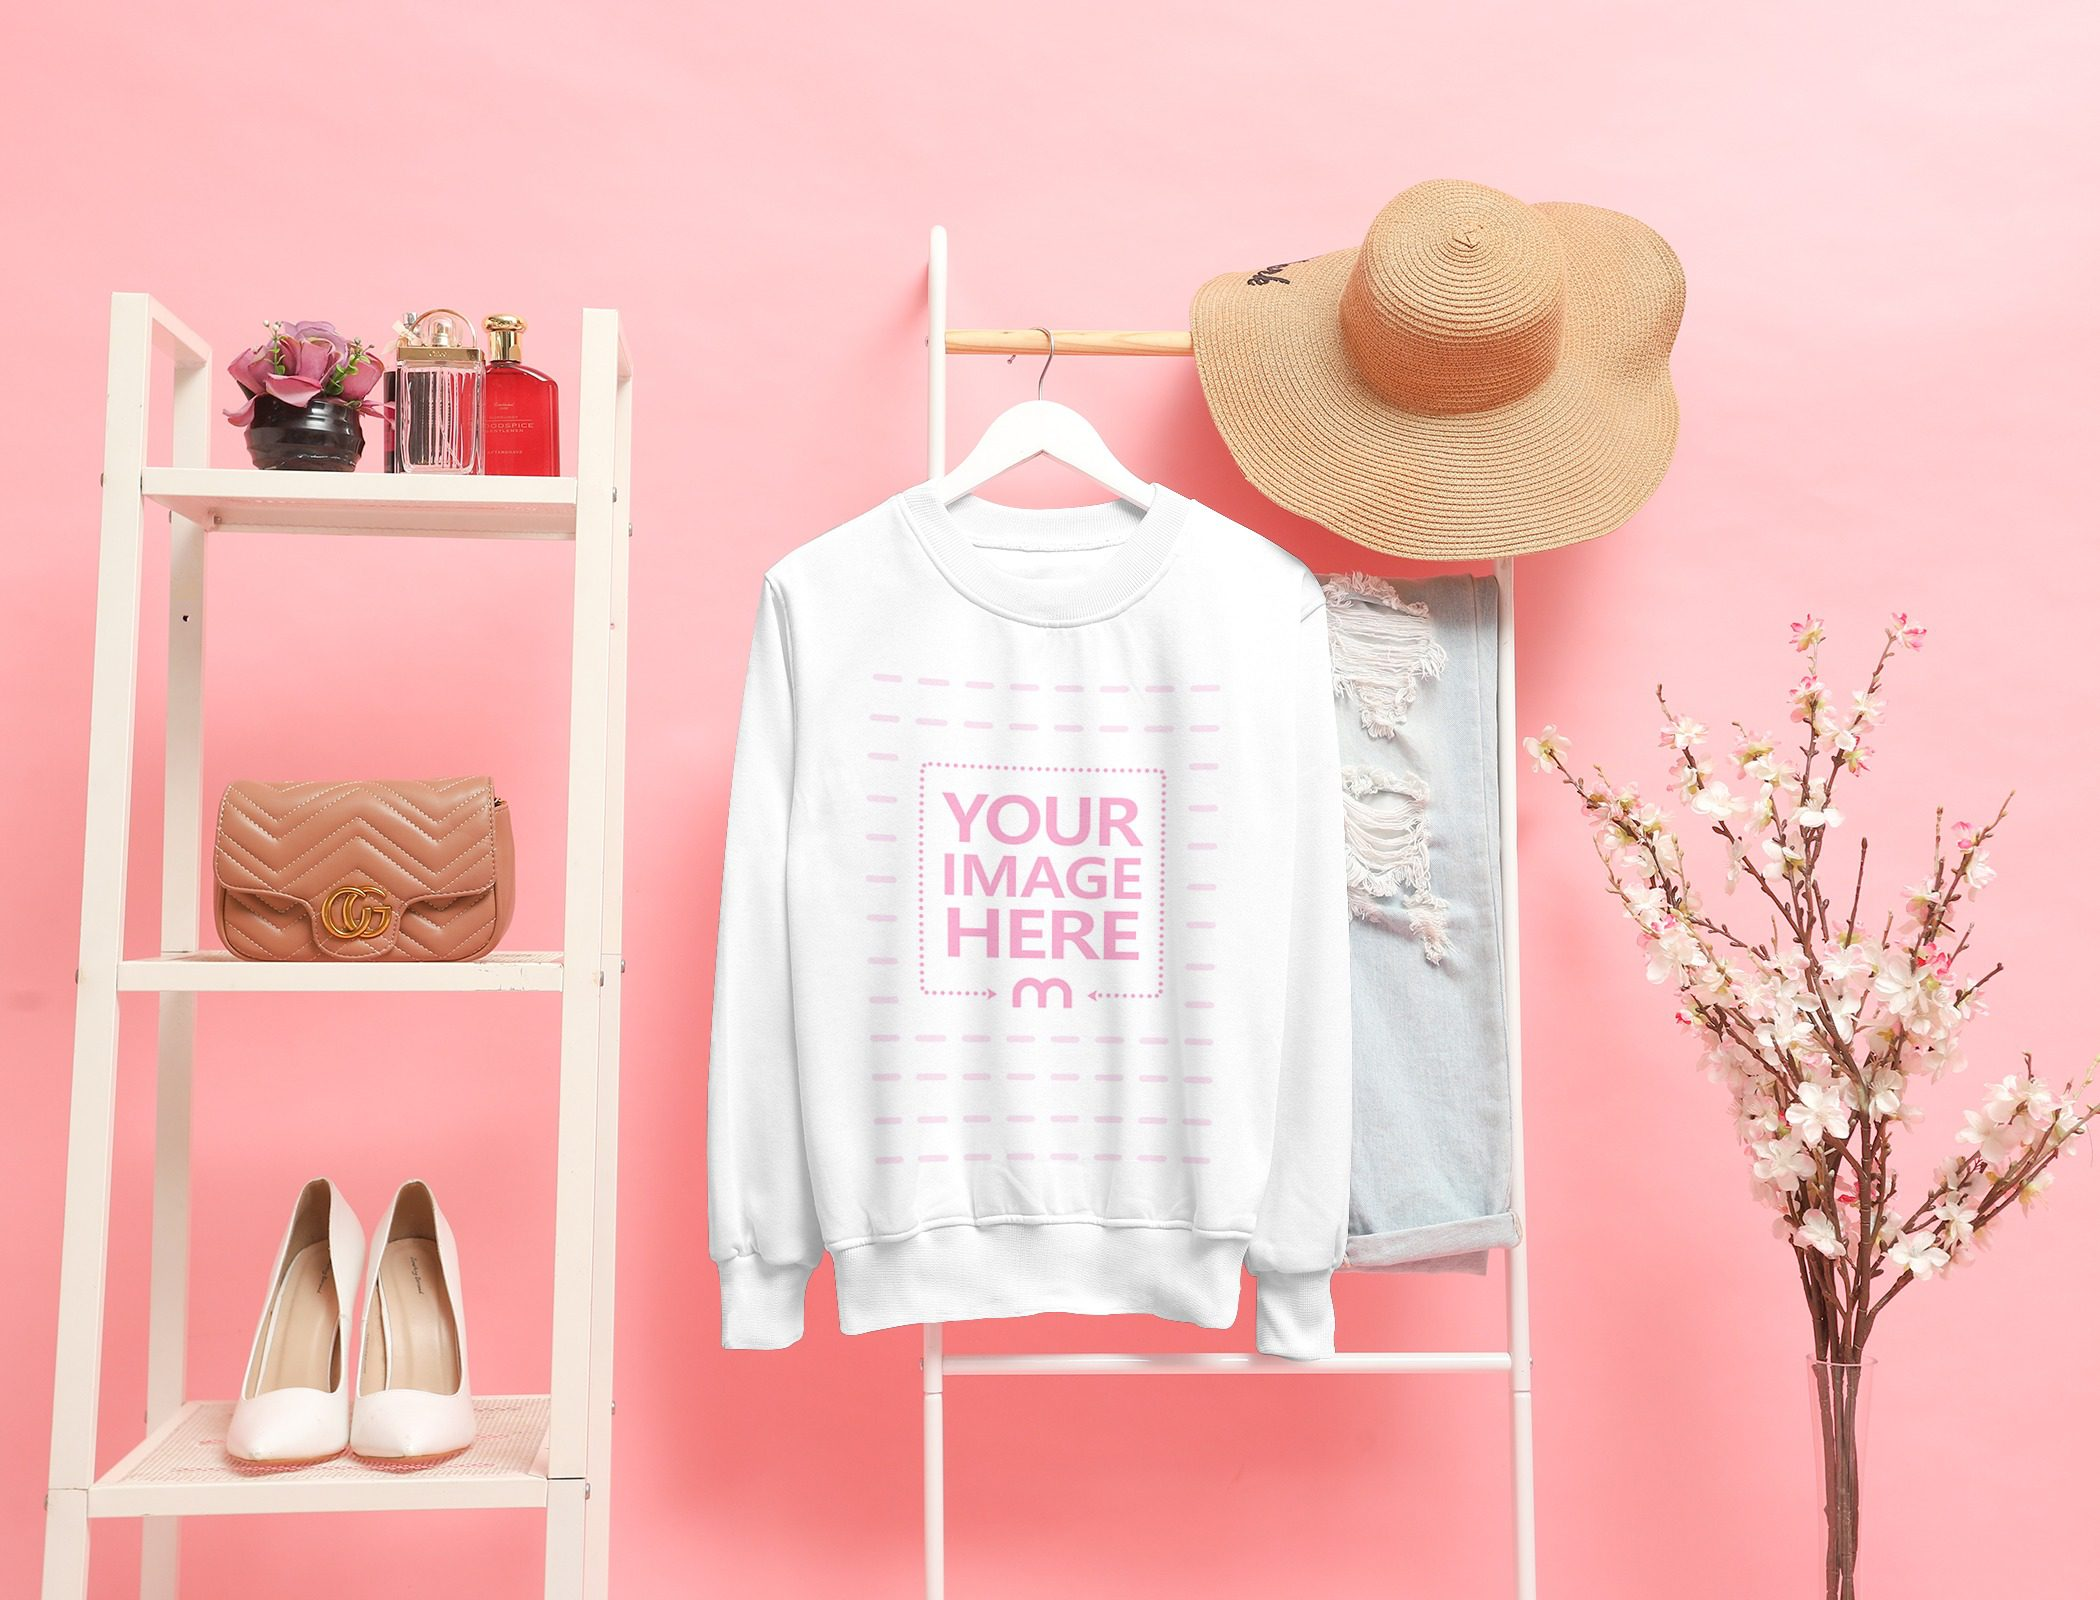 Customizable Mockup of a Crewneck Sweatshirt Hanged on a Stair With Pink Background